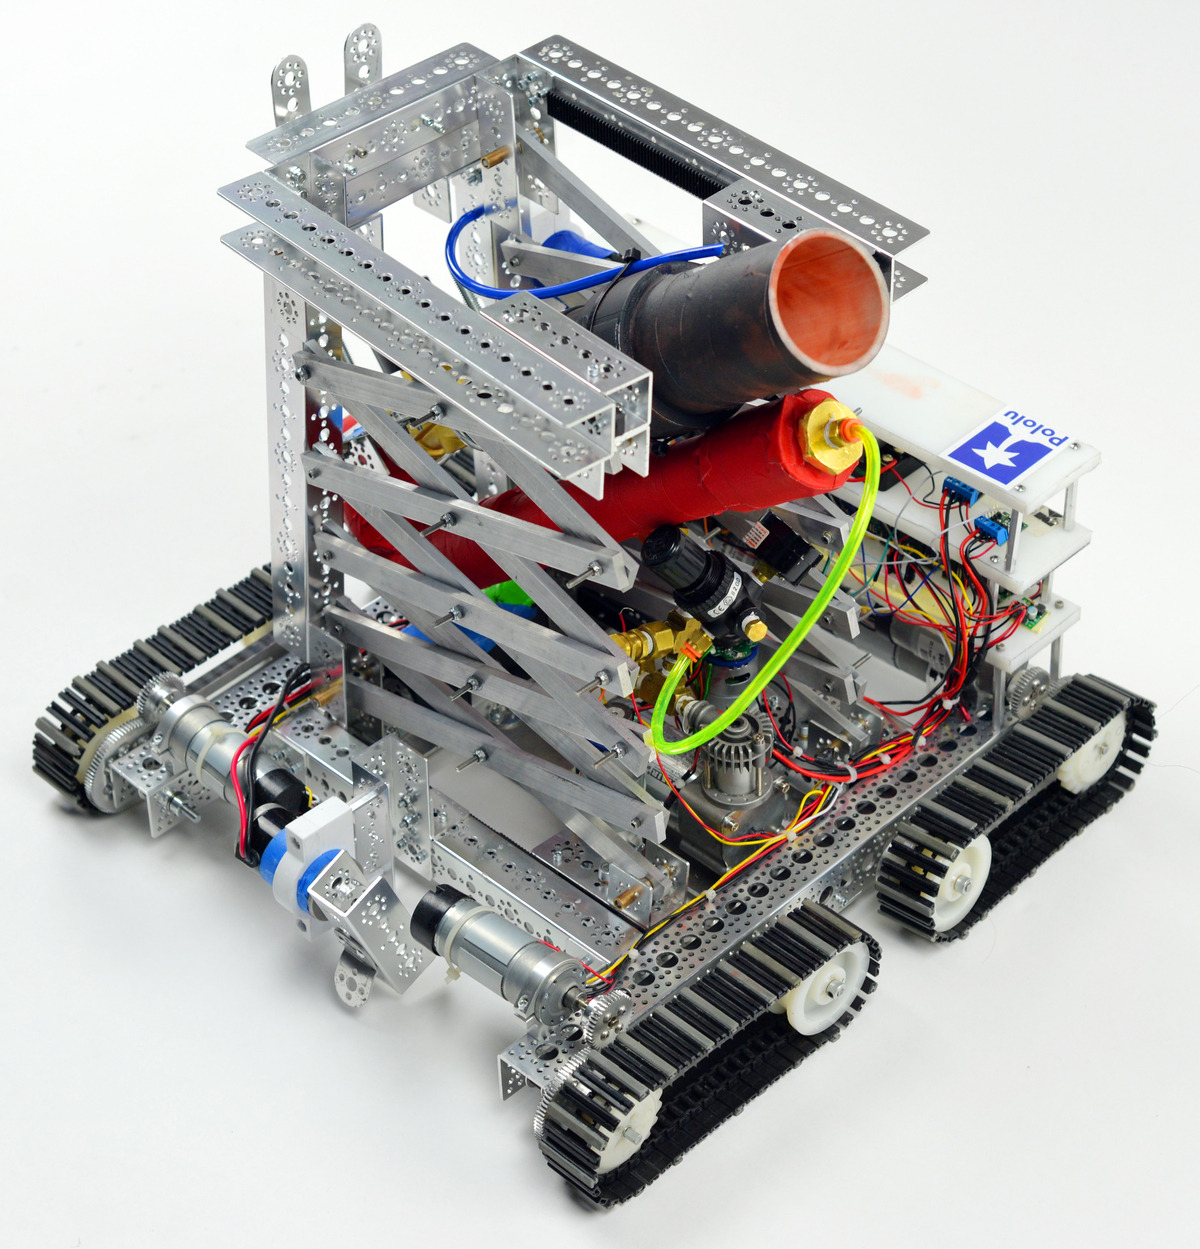 medium resolution of it has been over a year since my last first blog post about my mini sumo robot since then i have been busy studying to earn a mechanical engineering